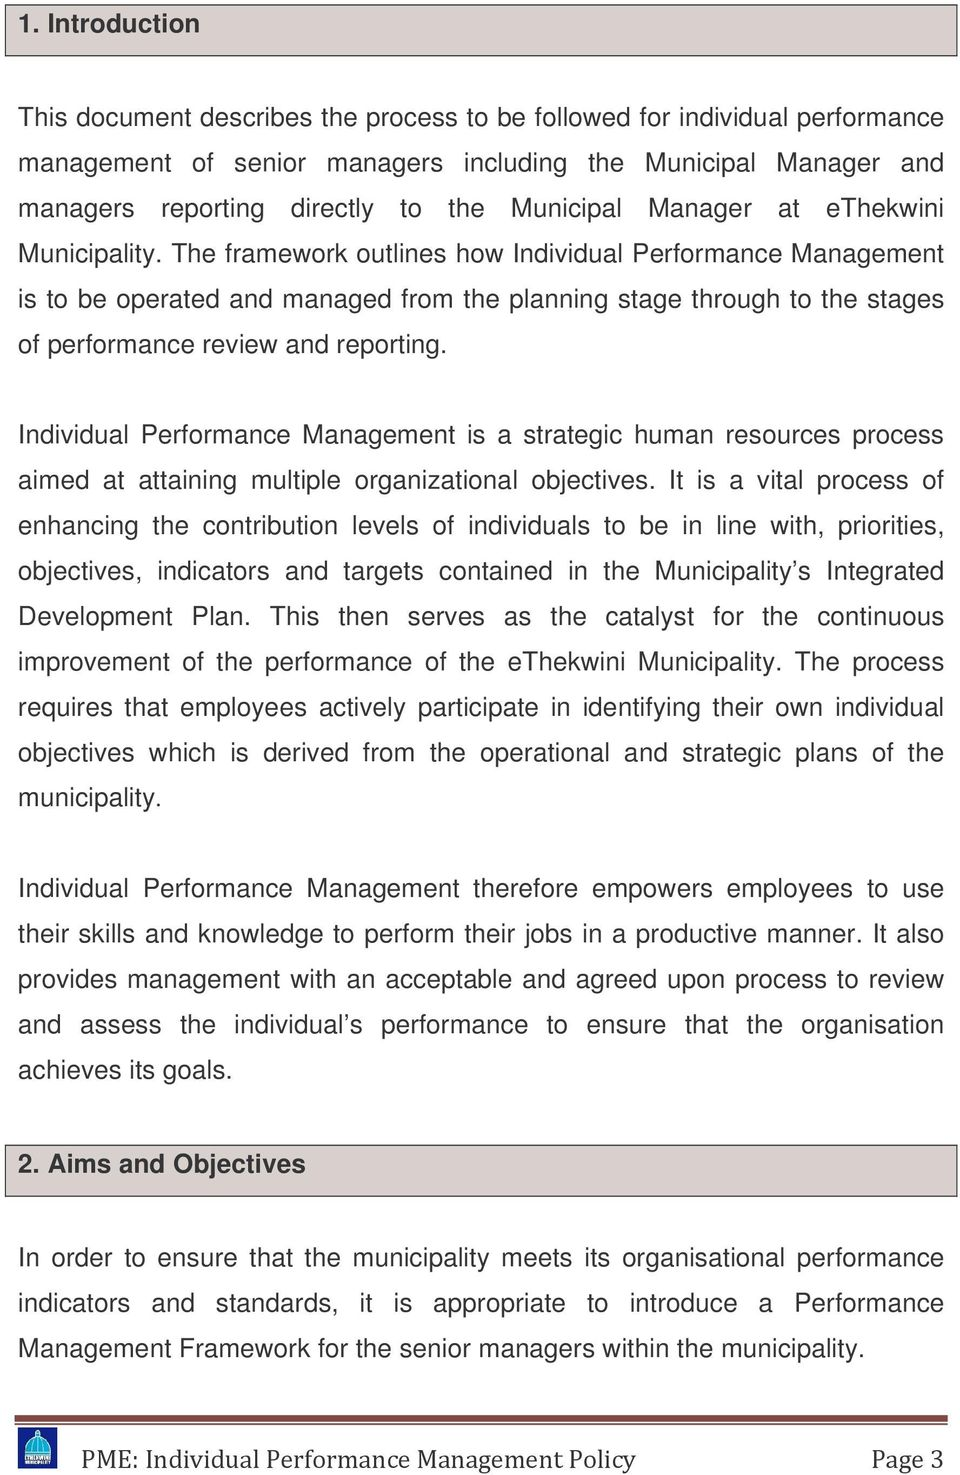 The framework outlines how Individual Performance Management is to be operated and managed from the planning stage through to the stages of performance review and reporting.